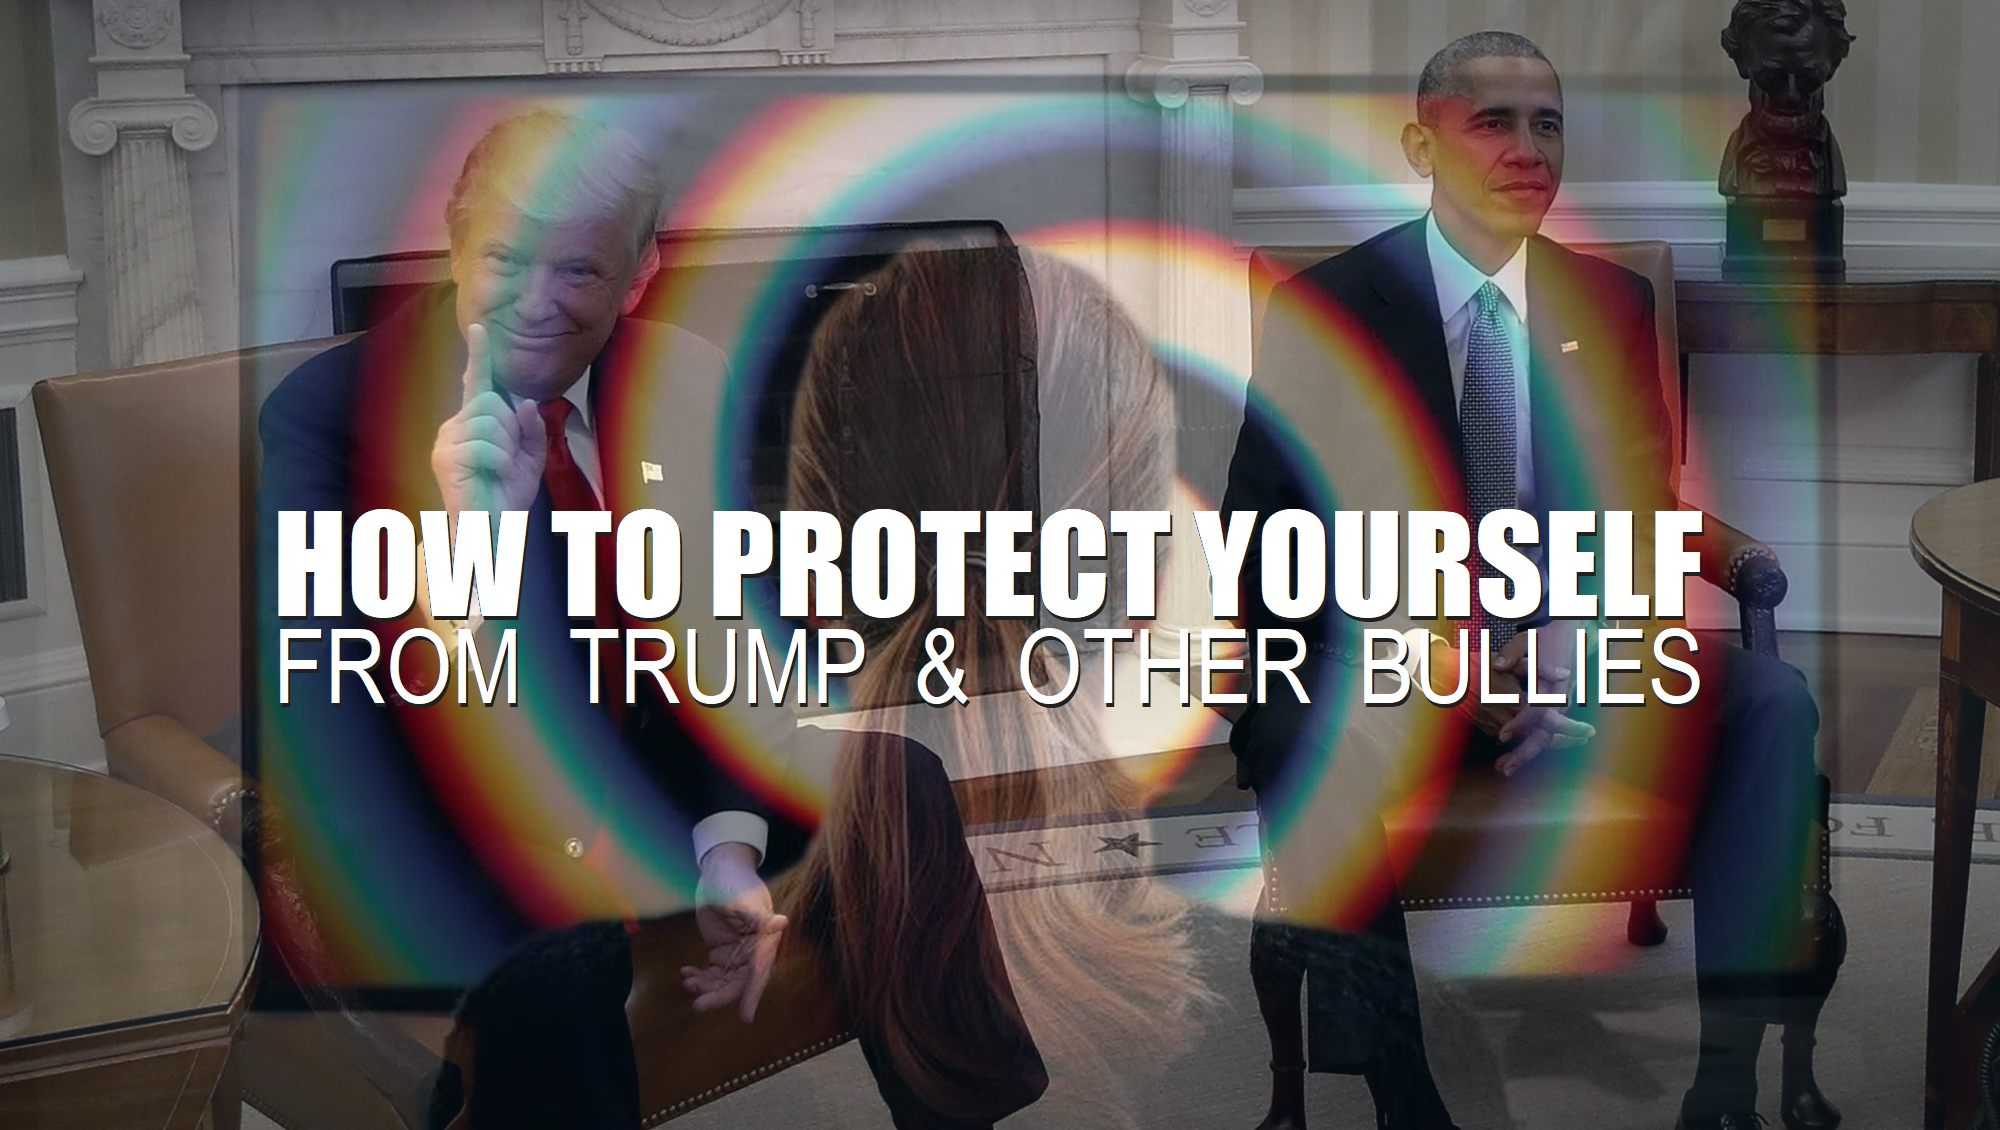 Trump-and-obama-depict-how-to-protect-yourself-from-Trump-other-bullies-metaphysical-principles-problem-solving